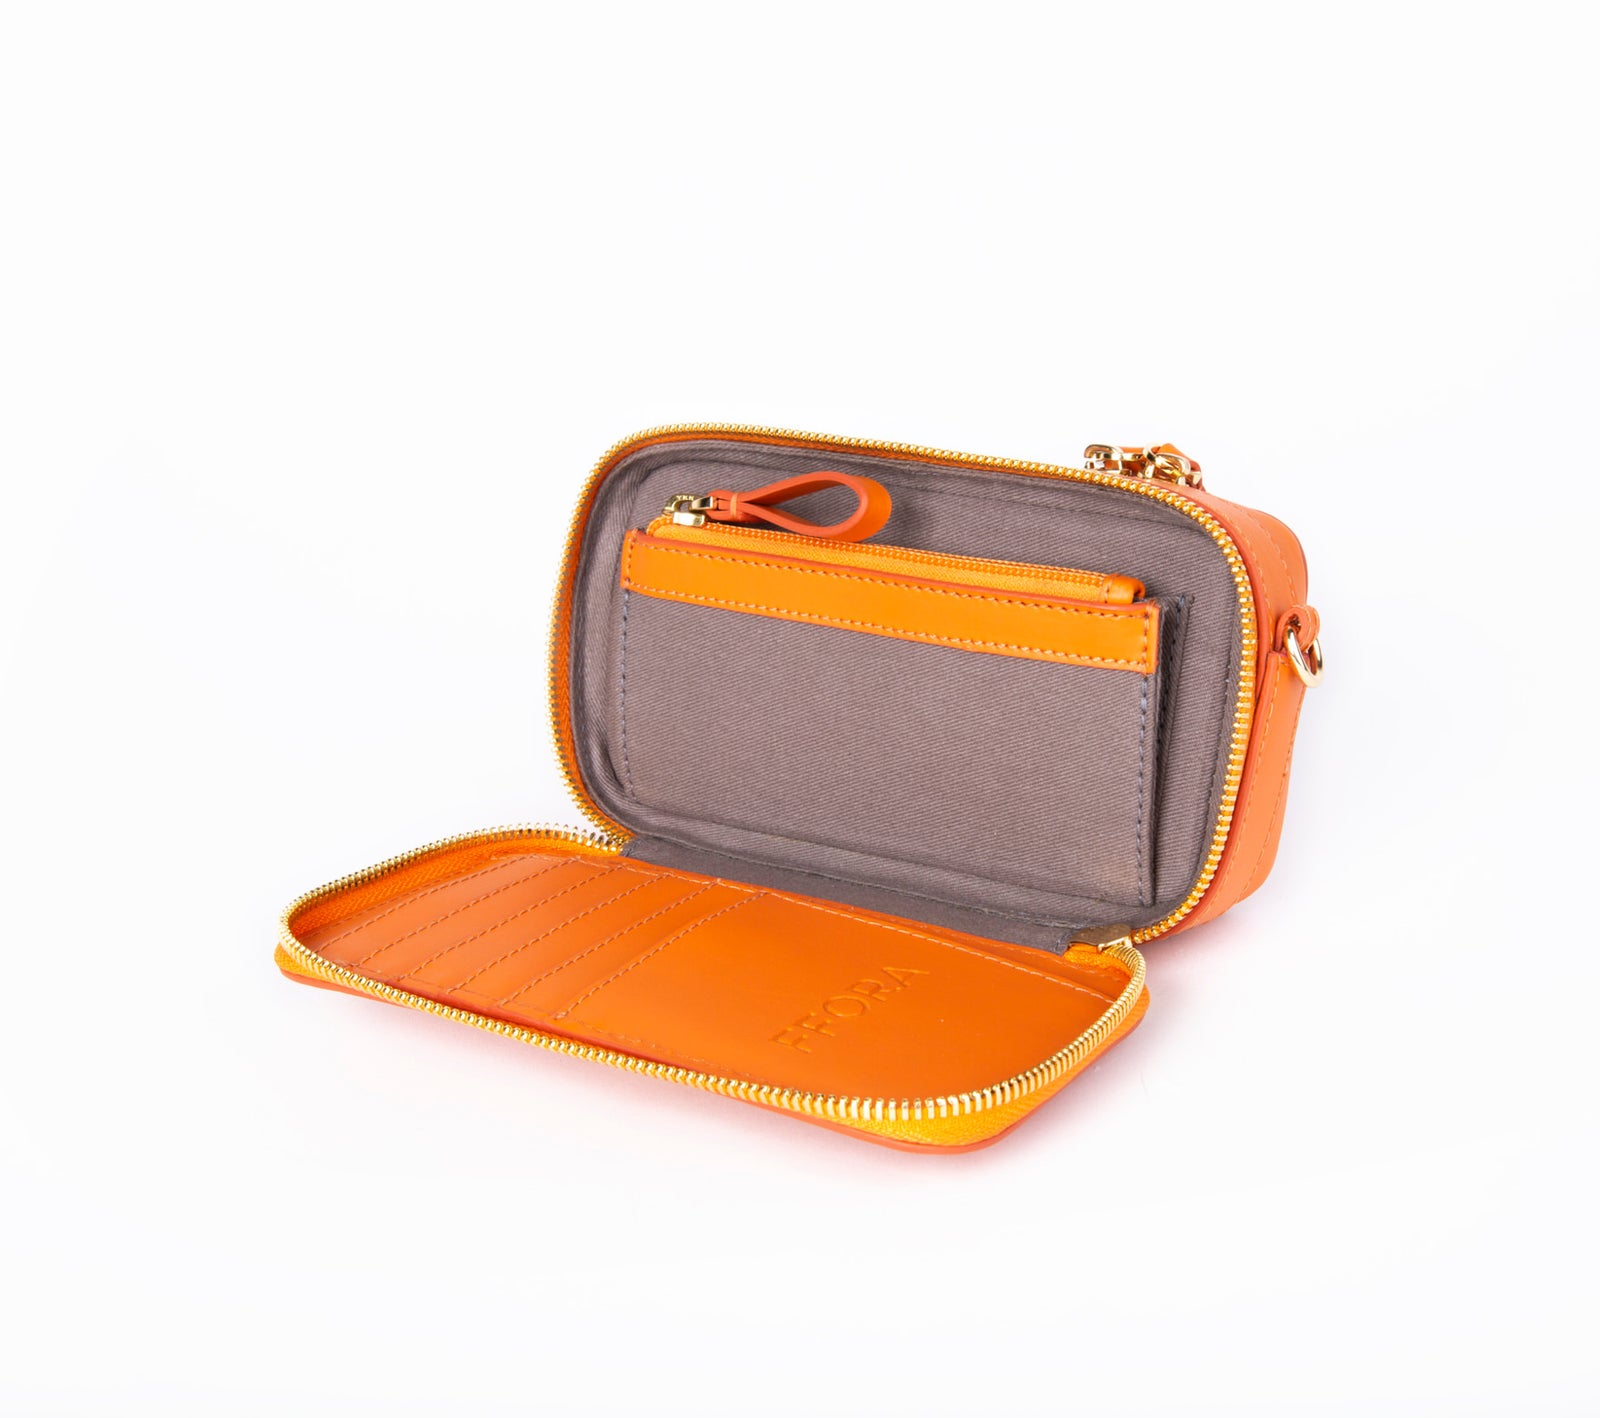 Essentials Bag in Tangerine